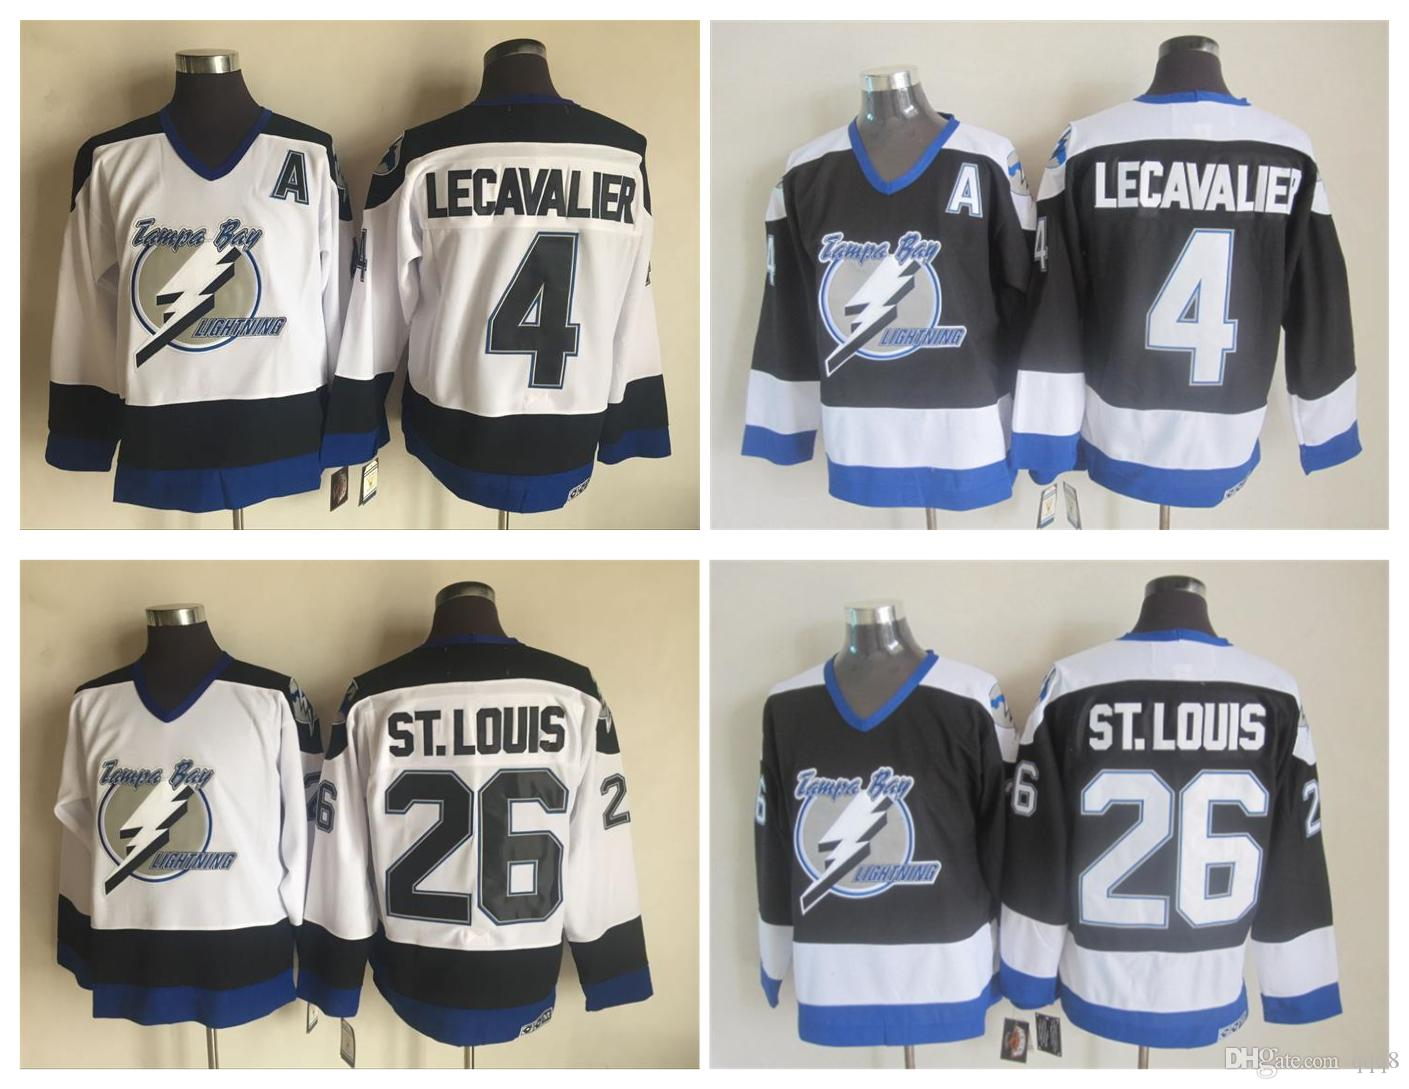 8760a3cf7 2019 Retro Tampa Bay Lightning Hockey Jersey 4 Vincent Lecavalier 26 Martin  St.Louis Jersey Green Vintage CCM Authentic Stitched Jerseys From Qqq8